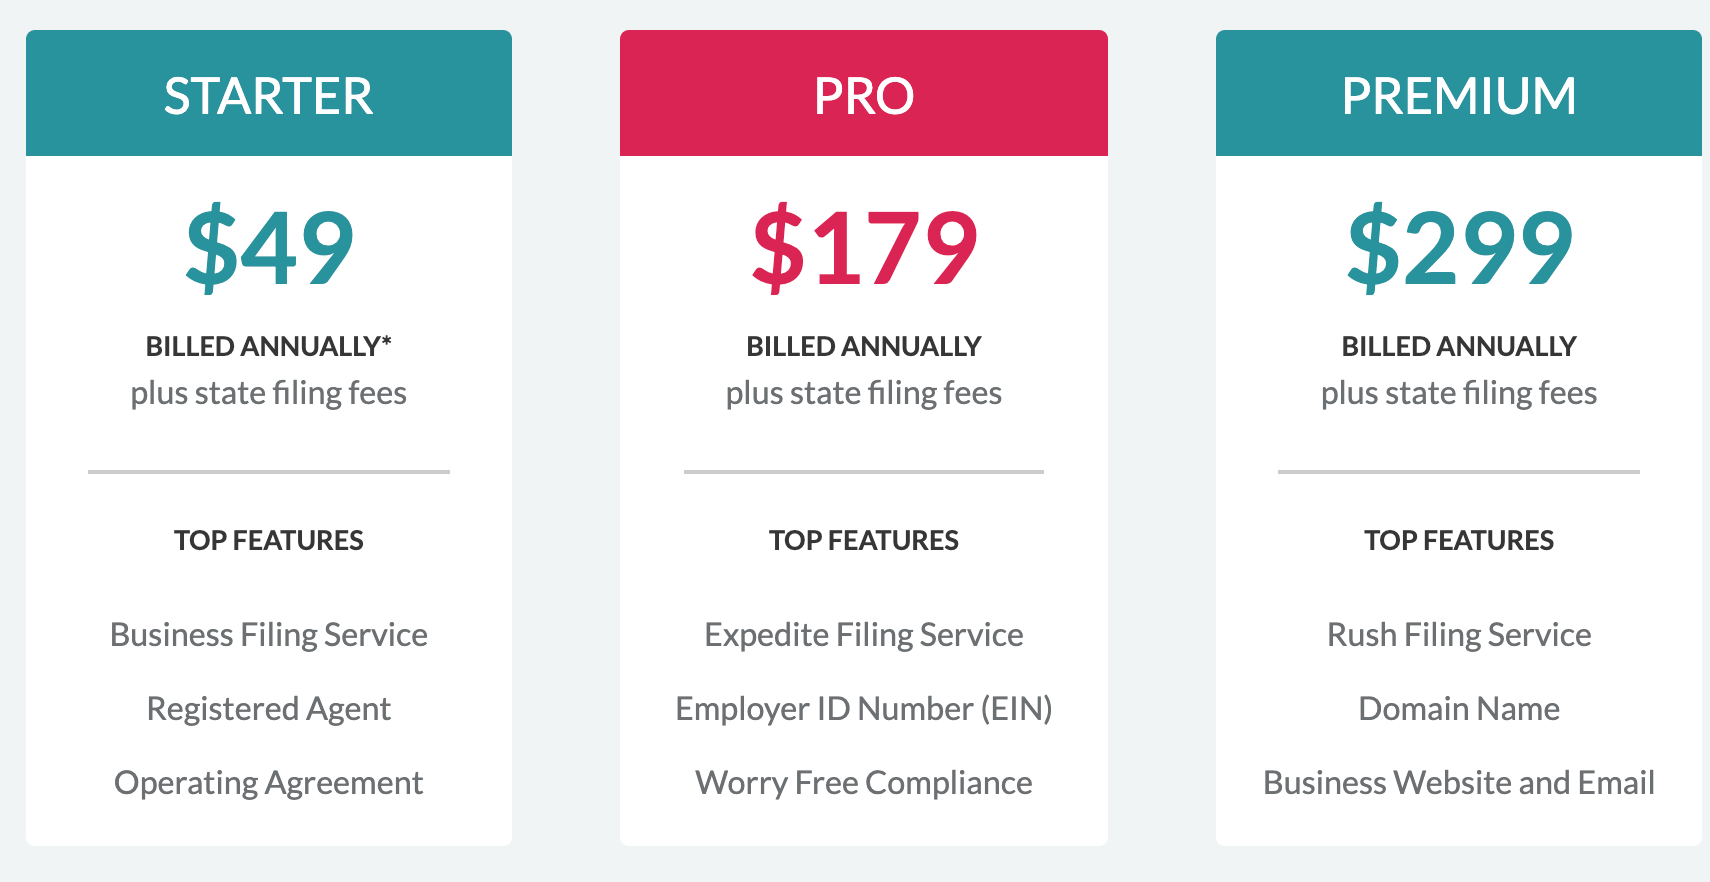 Pricing Plans Of ZenBusiness